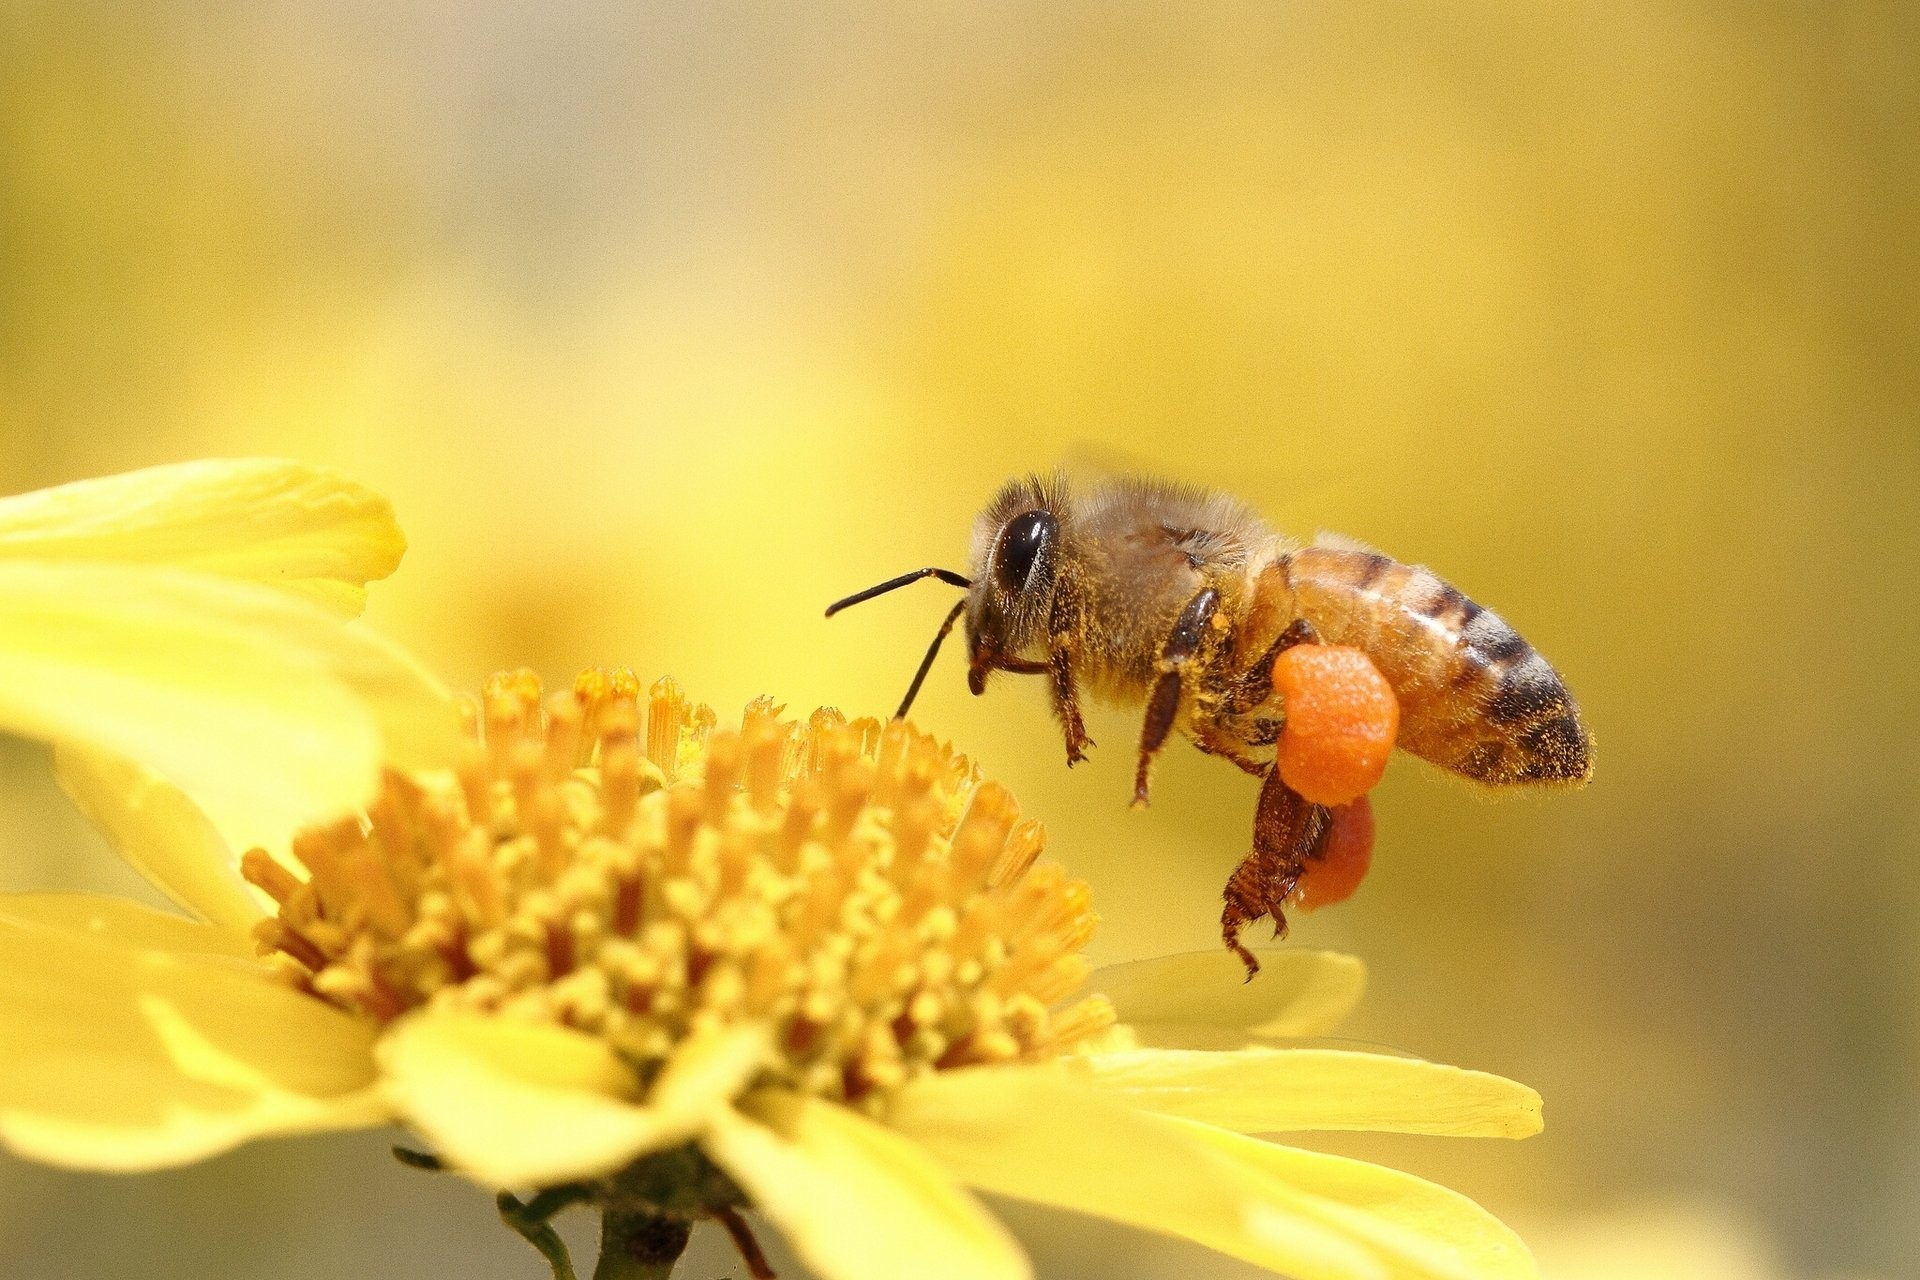 Image: Bee, collection, flower, yellow